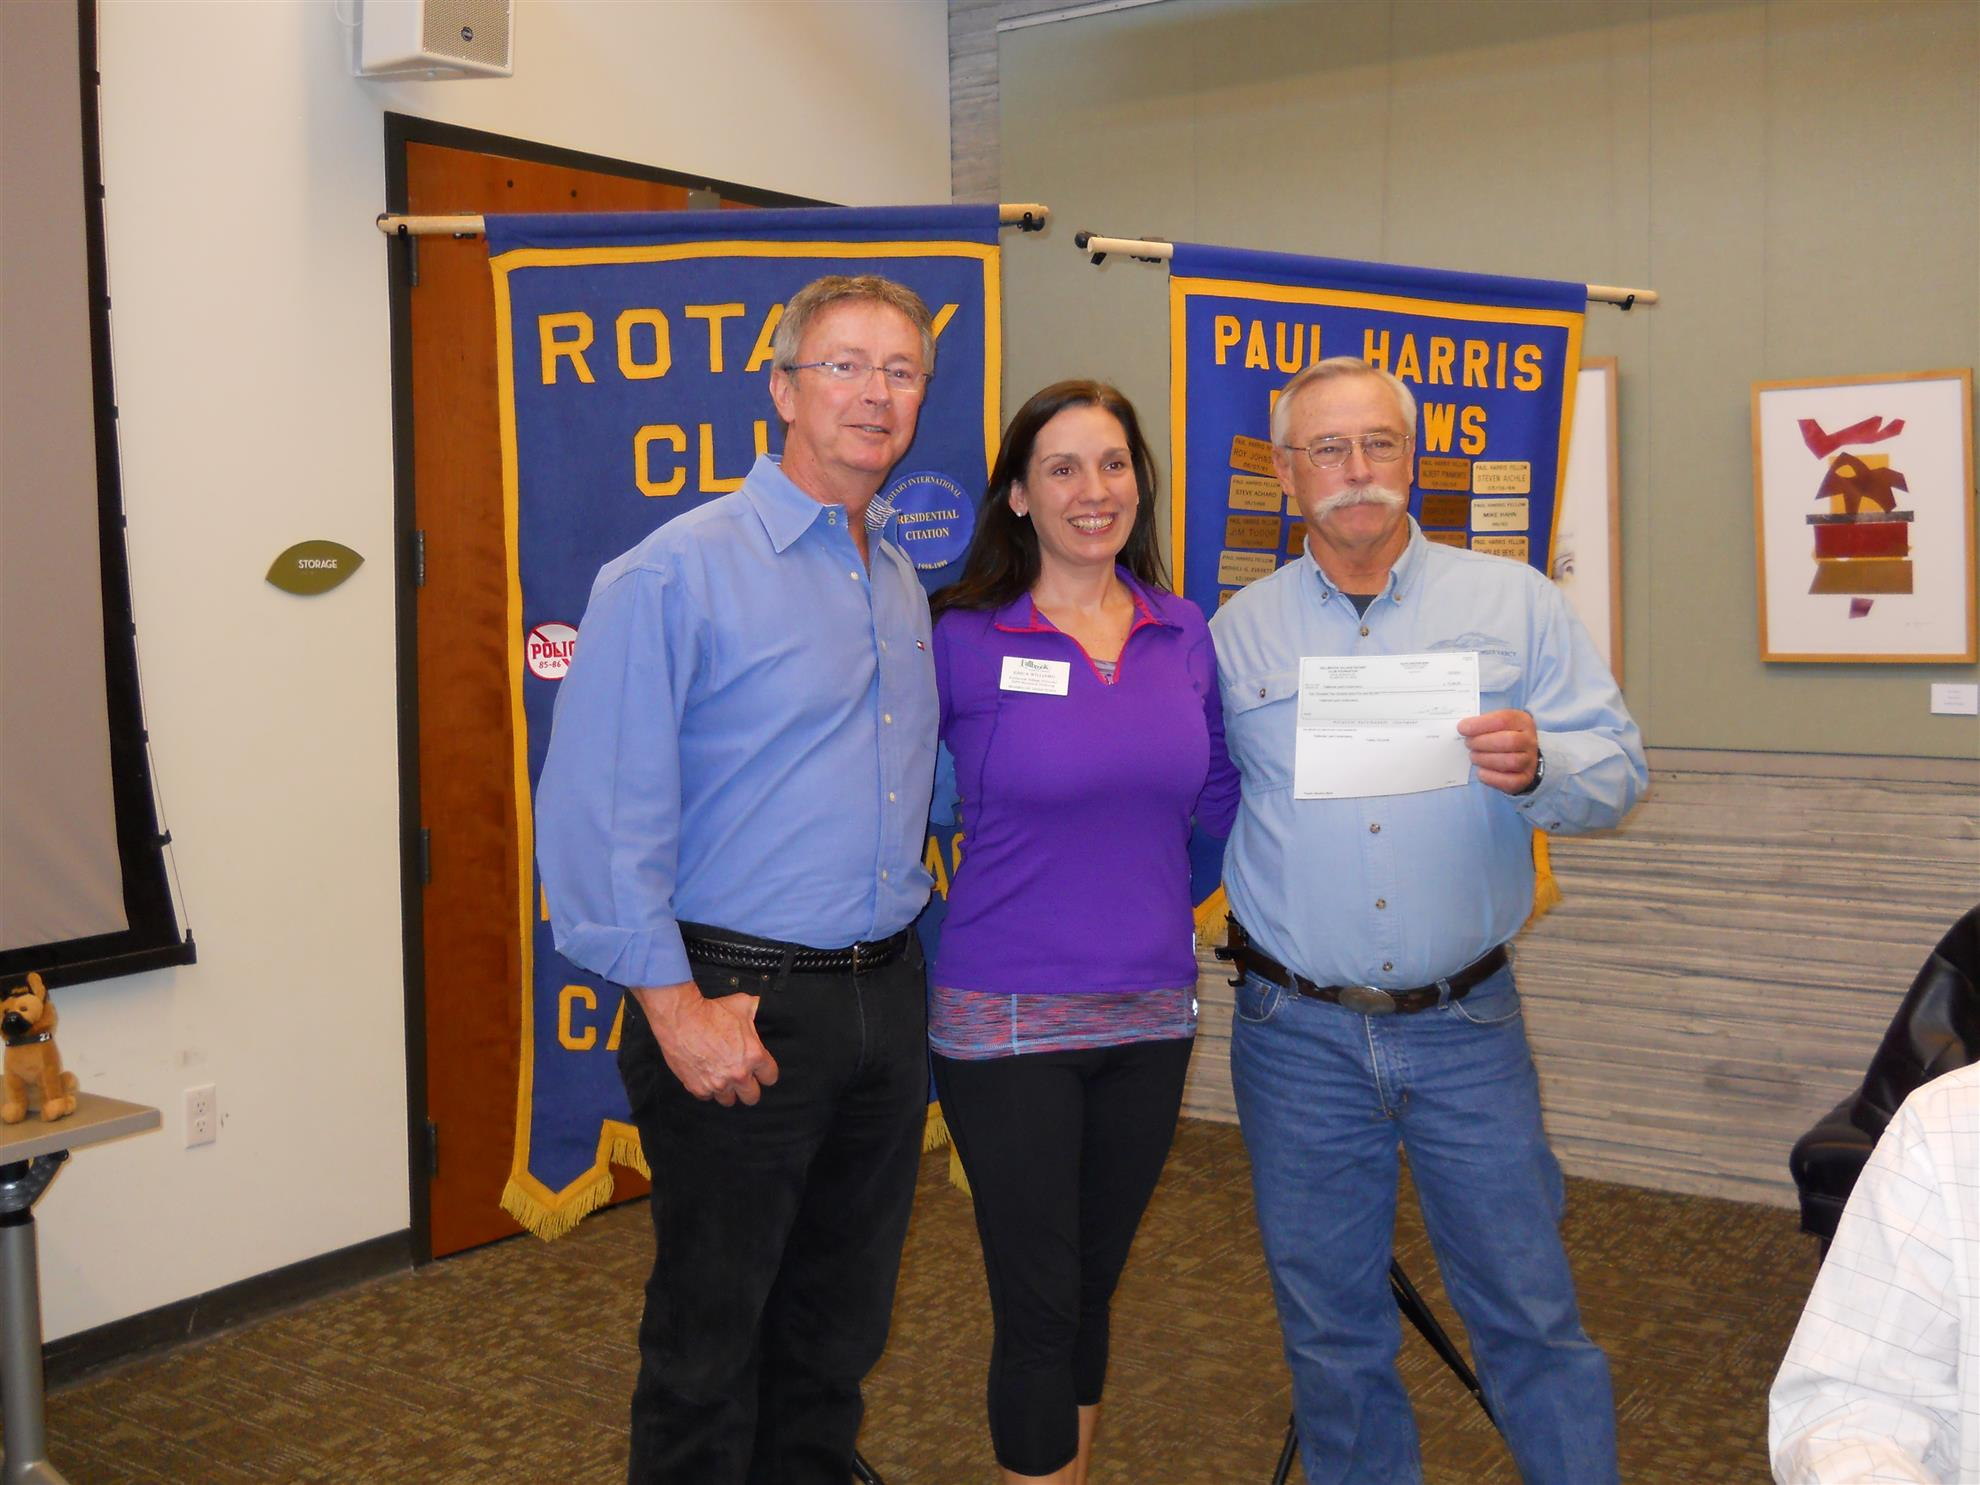 fallbrook land conservancy presented donation  erica williams presented a check for 2265 to fallbrook land conservancy representatives william shakespeare and mike peters the money was raised during